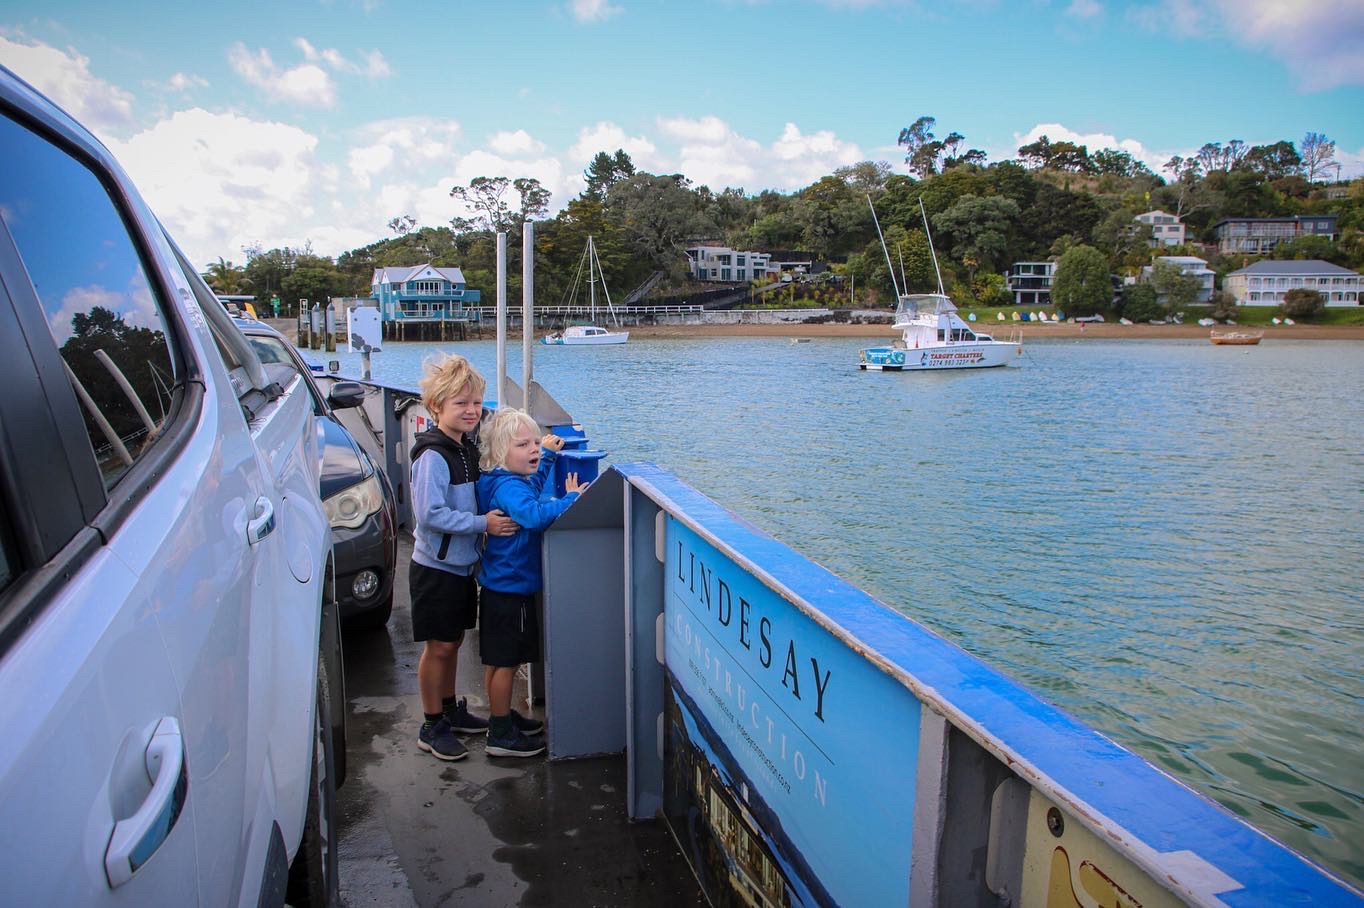 On board the vehicle ferry from Opua to Okiato. A great day out finding things to do in Russell with kids.